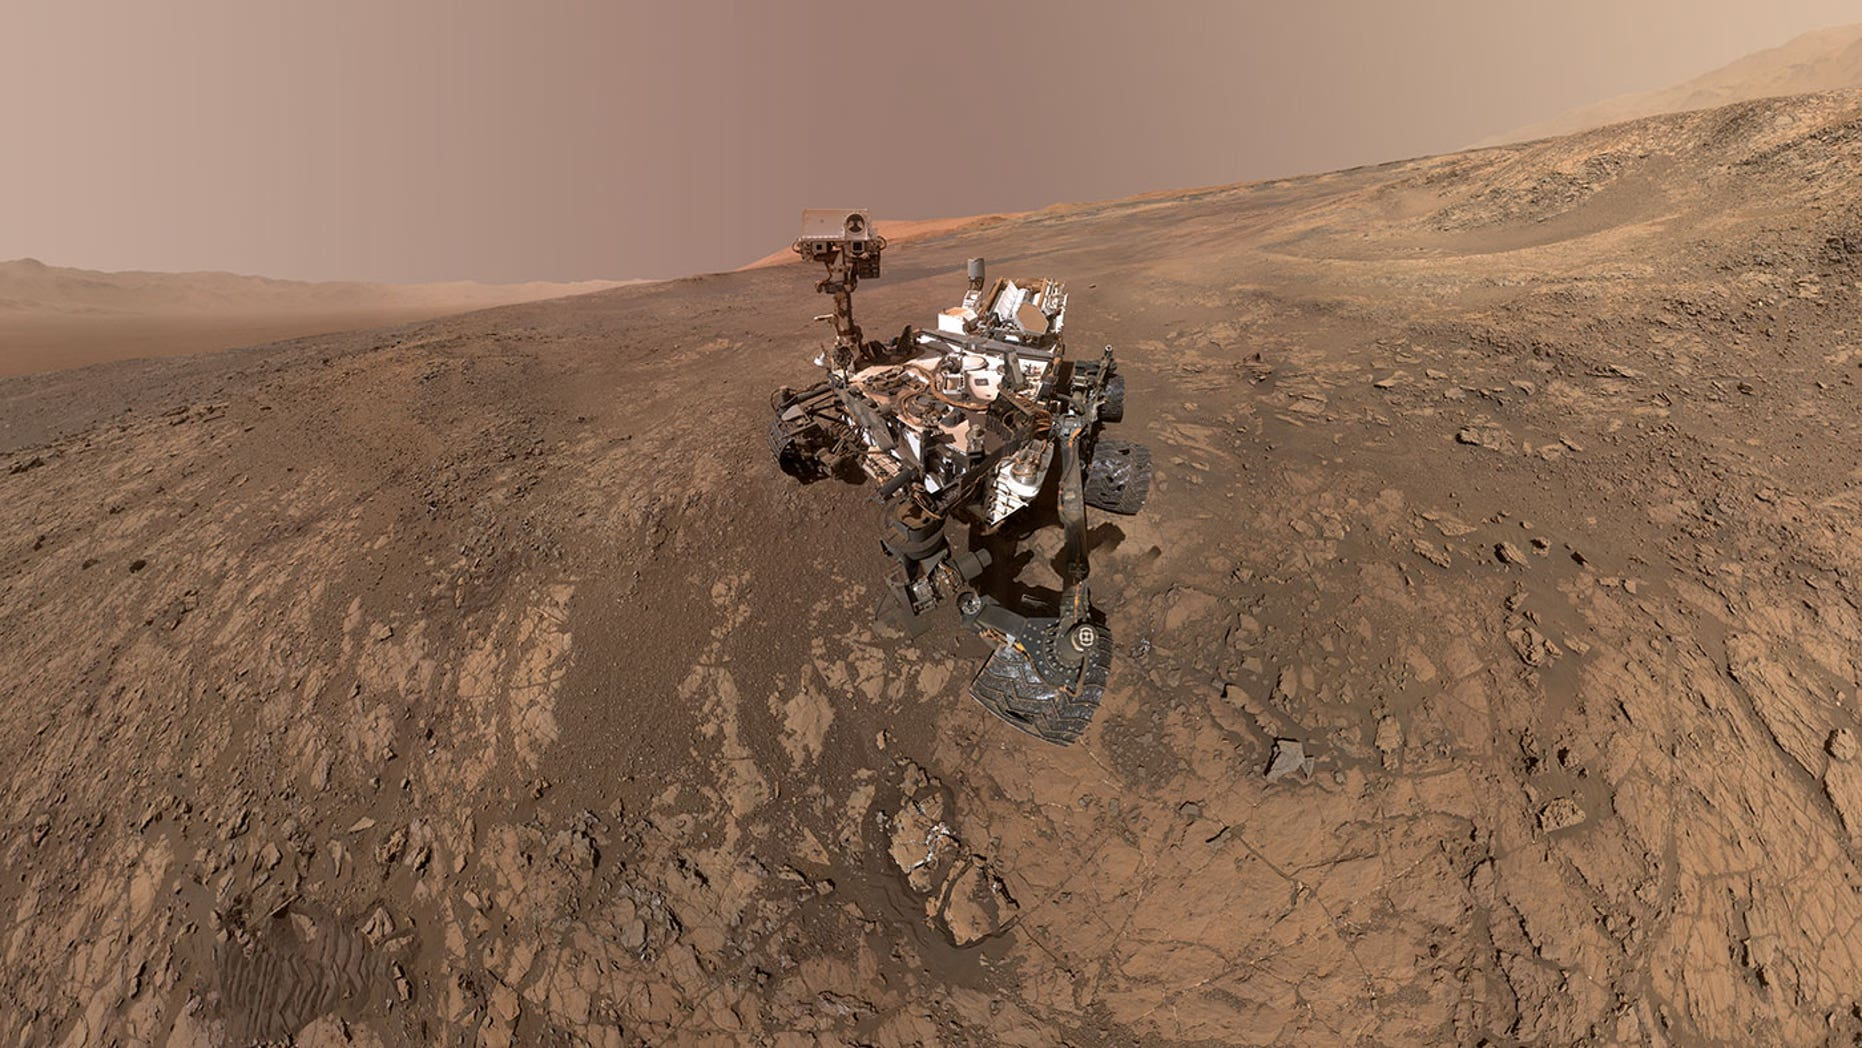 NASA will hold a press conference Thursday, June 7, 2018, to announce a new discovery on Mars from the Curiosity rover. Here, Curiosity snaps a selfie while perched on Vera Rubin Ridge on Mars in February 2018.